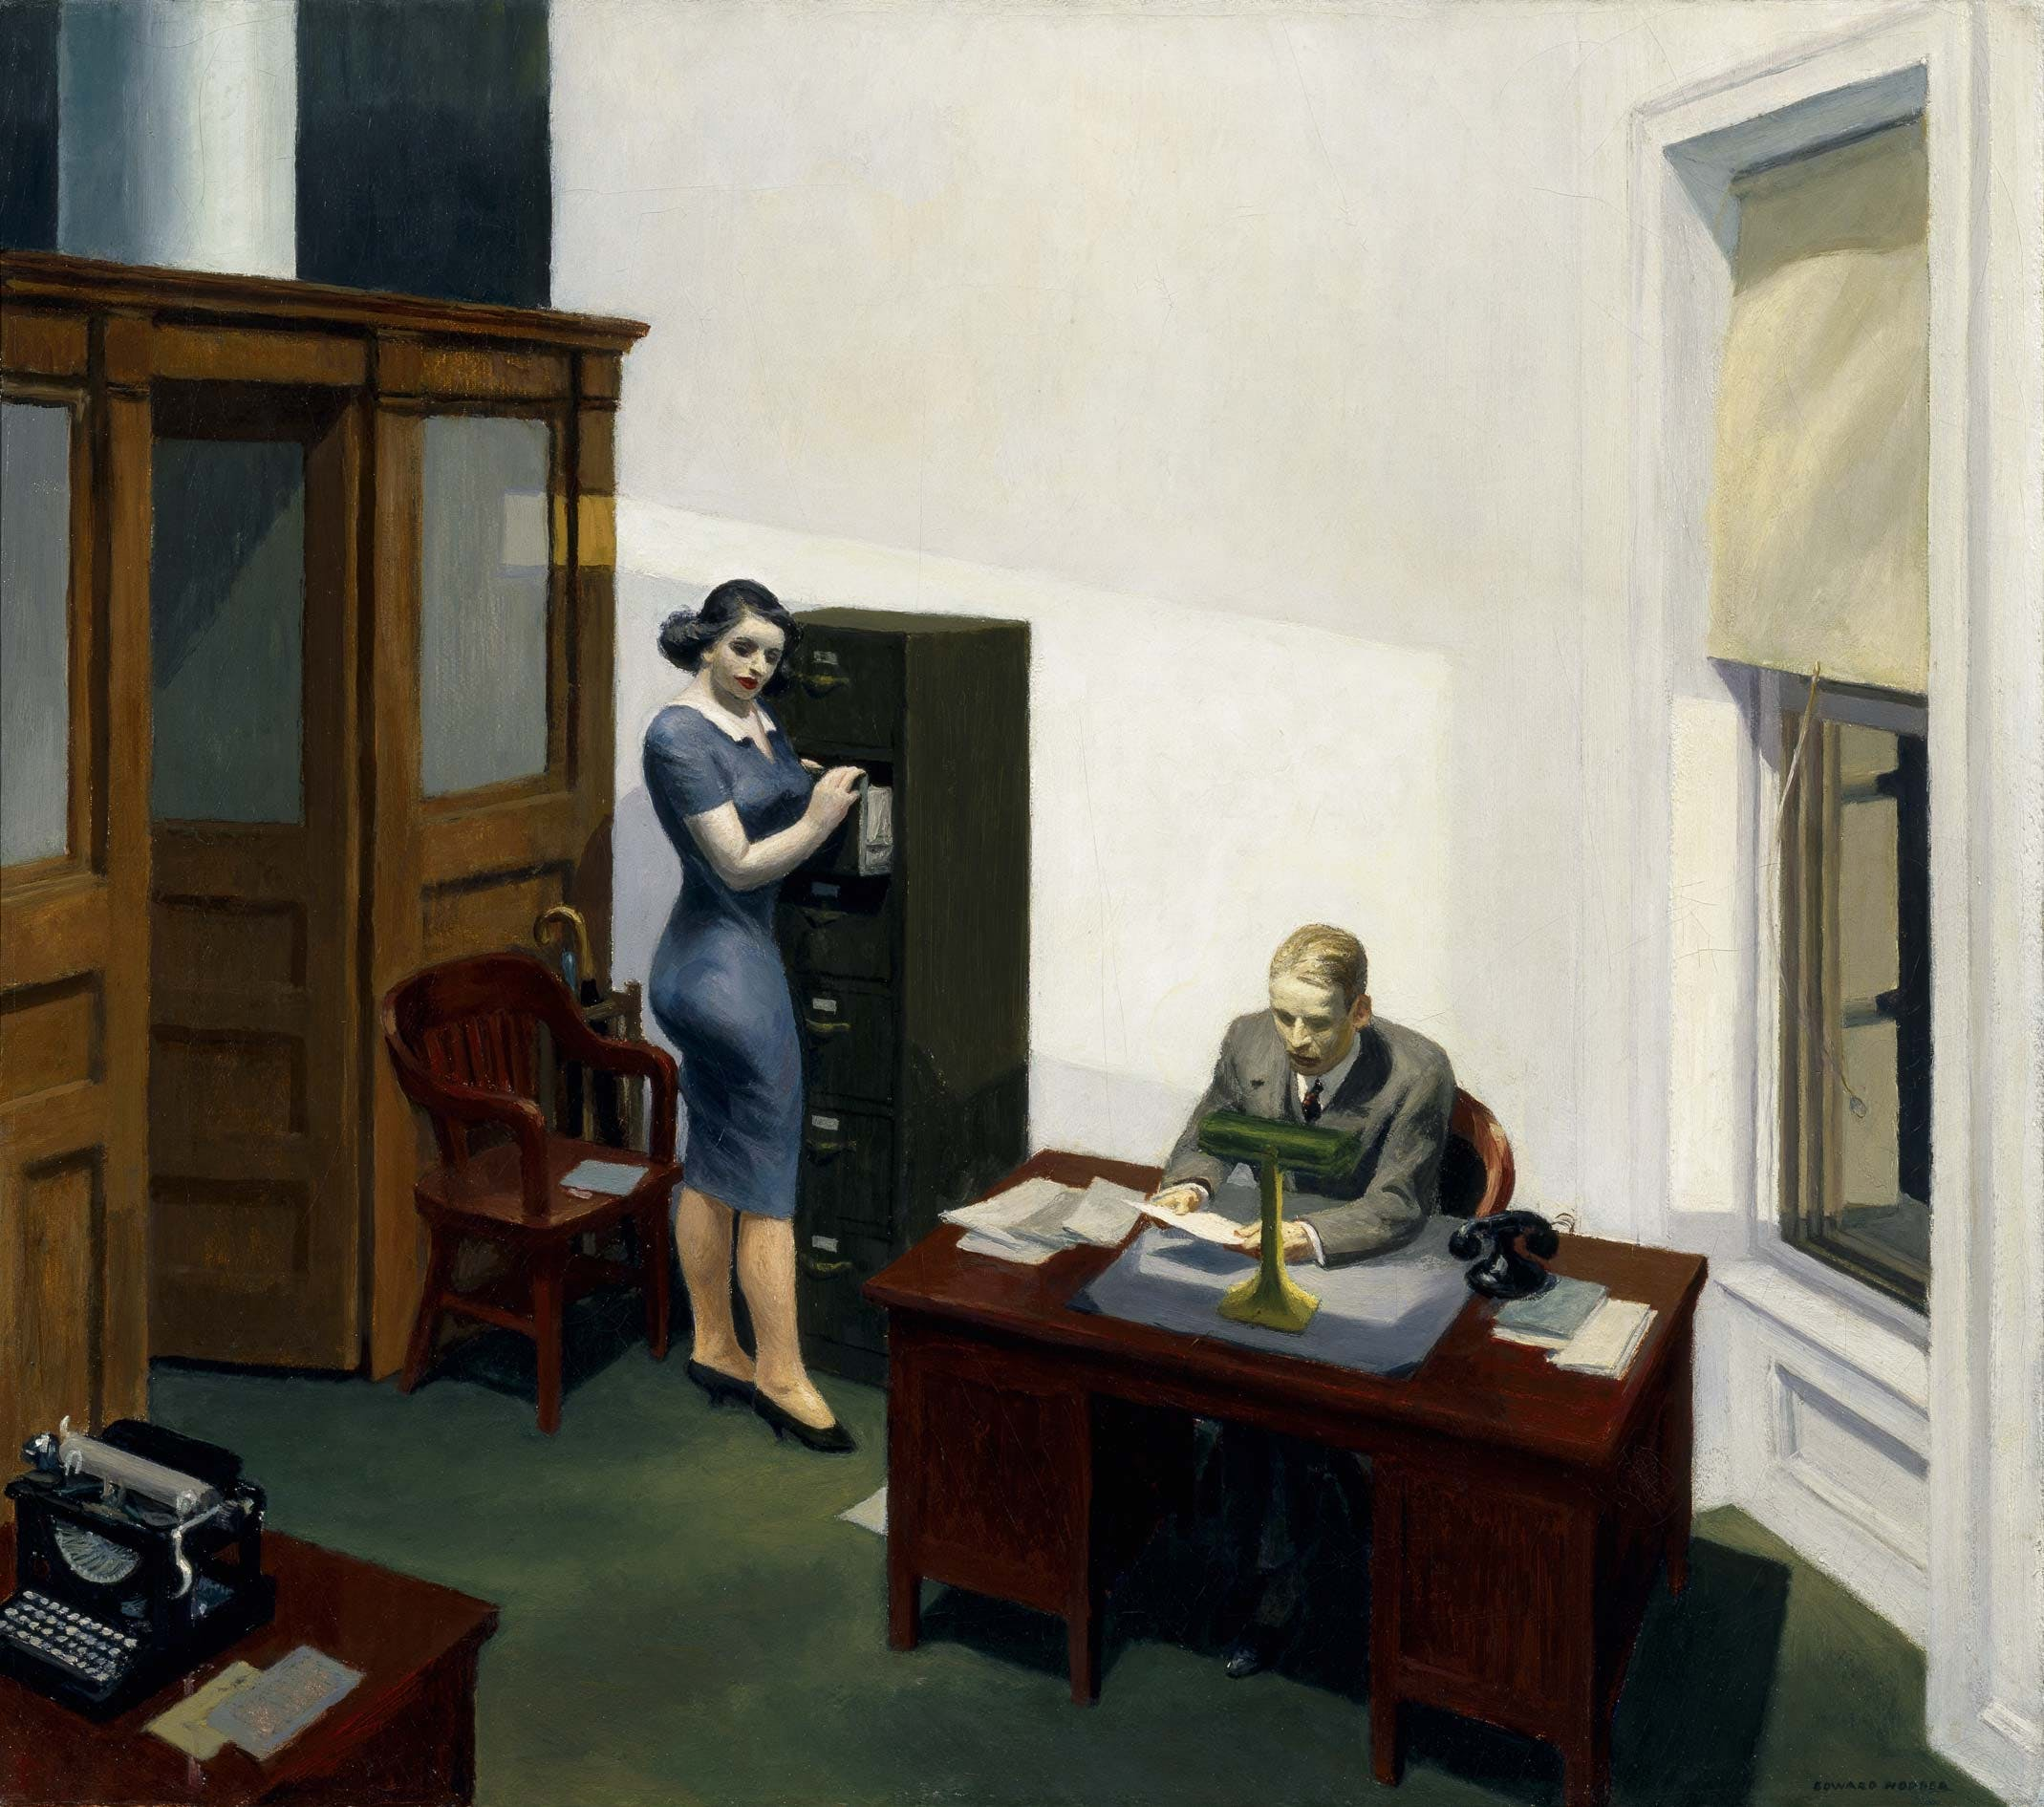 Painting of two people in an office